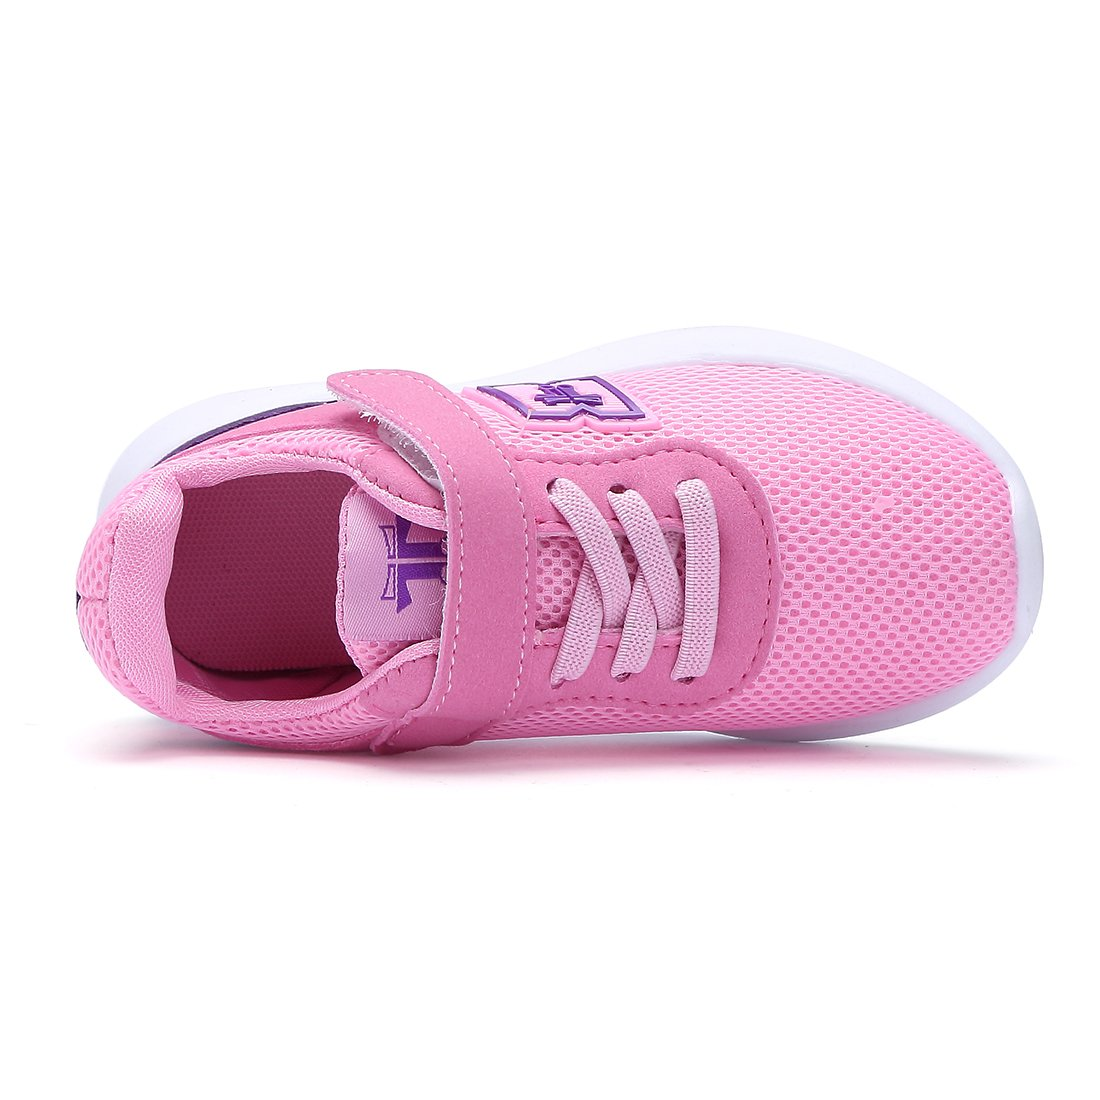 BTDREAM Boy and Girl's Breathable Fashion Sneakers Athletic Outdoor Sports Running Shoes Pink Size 26 by BTDREAM (Image #5)